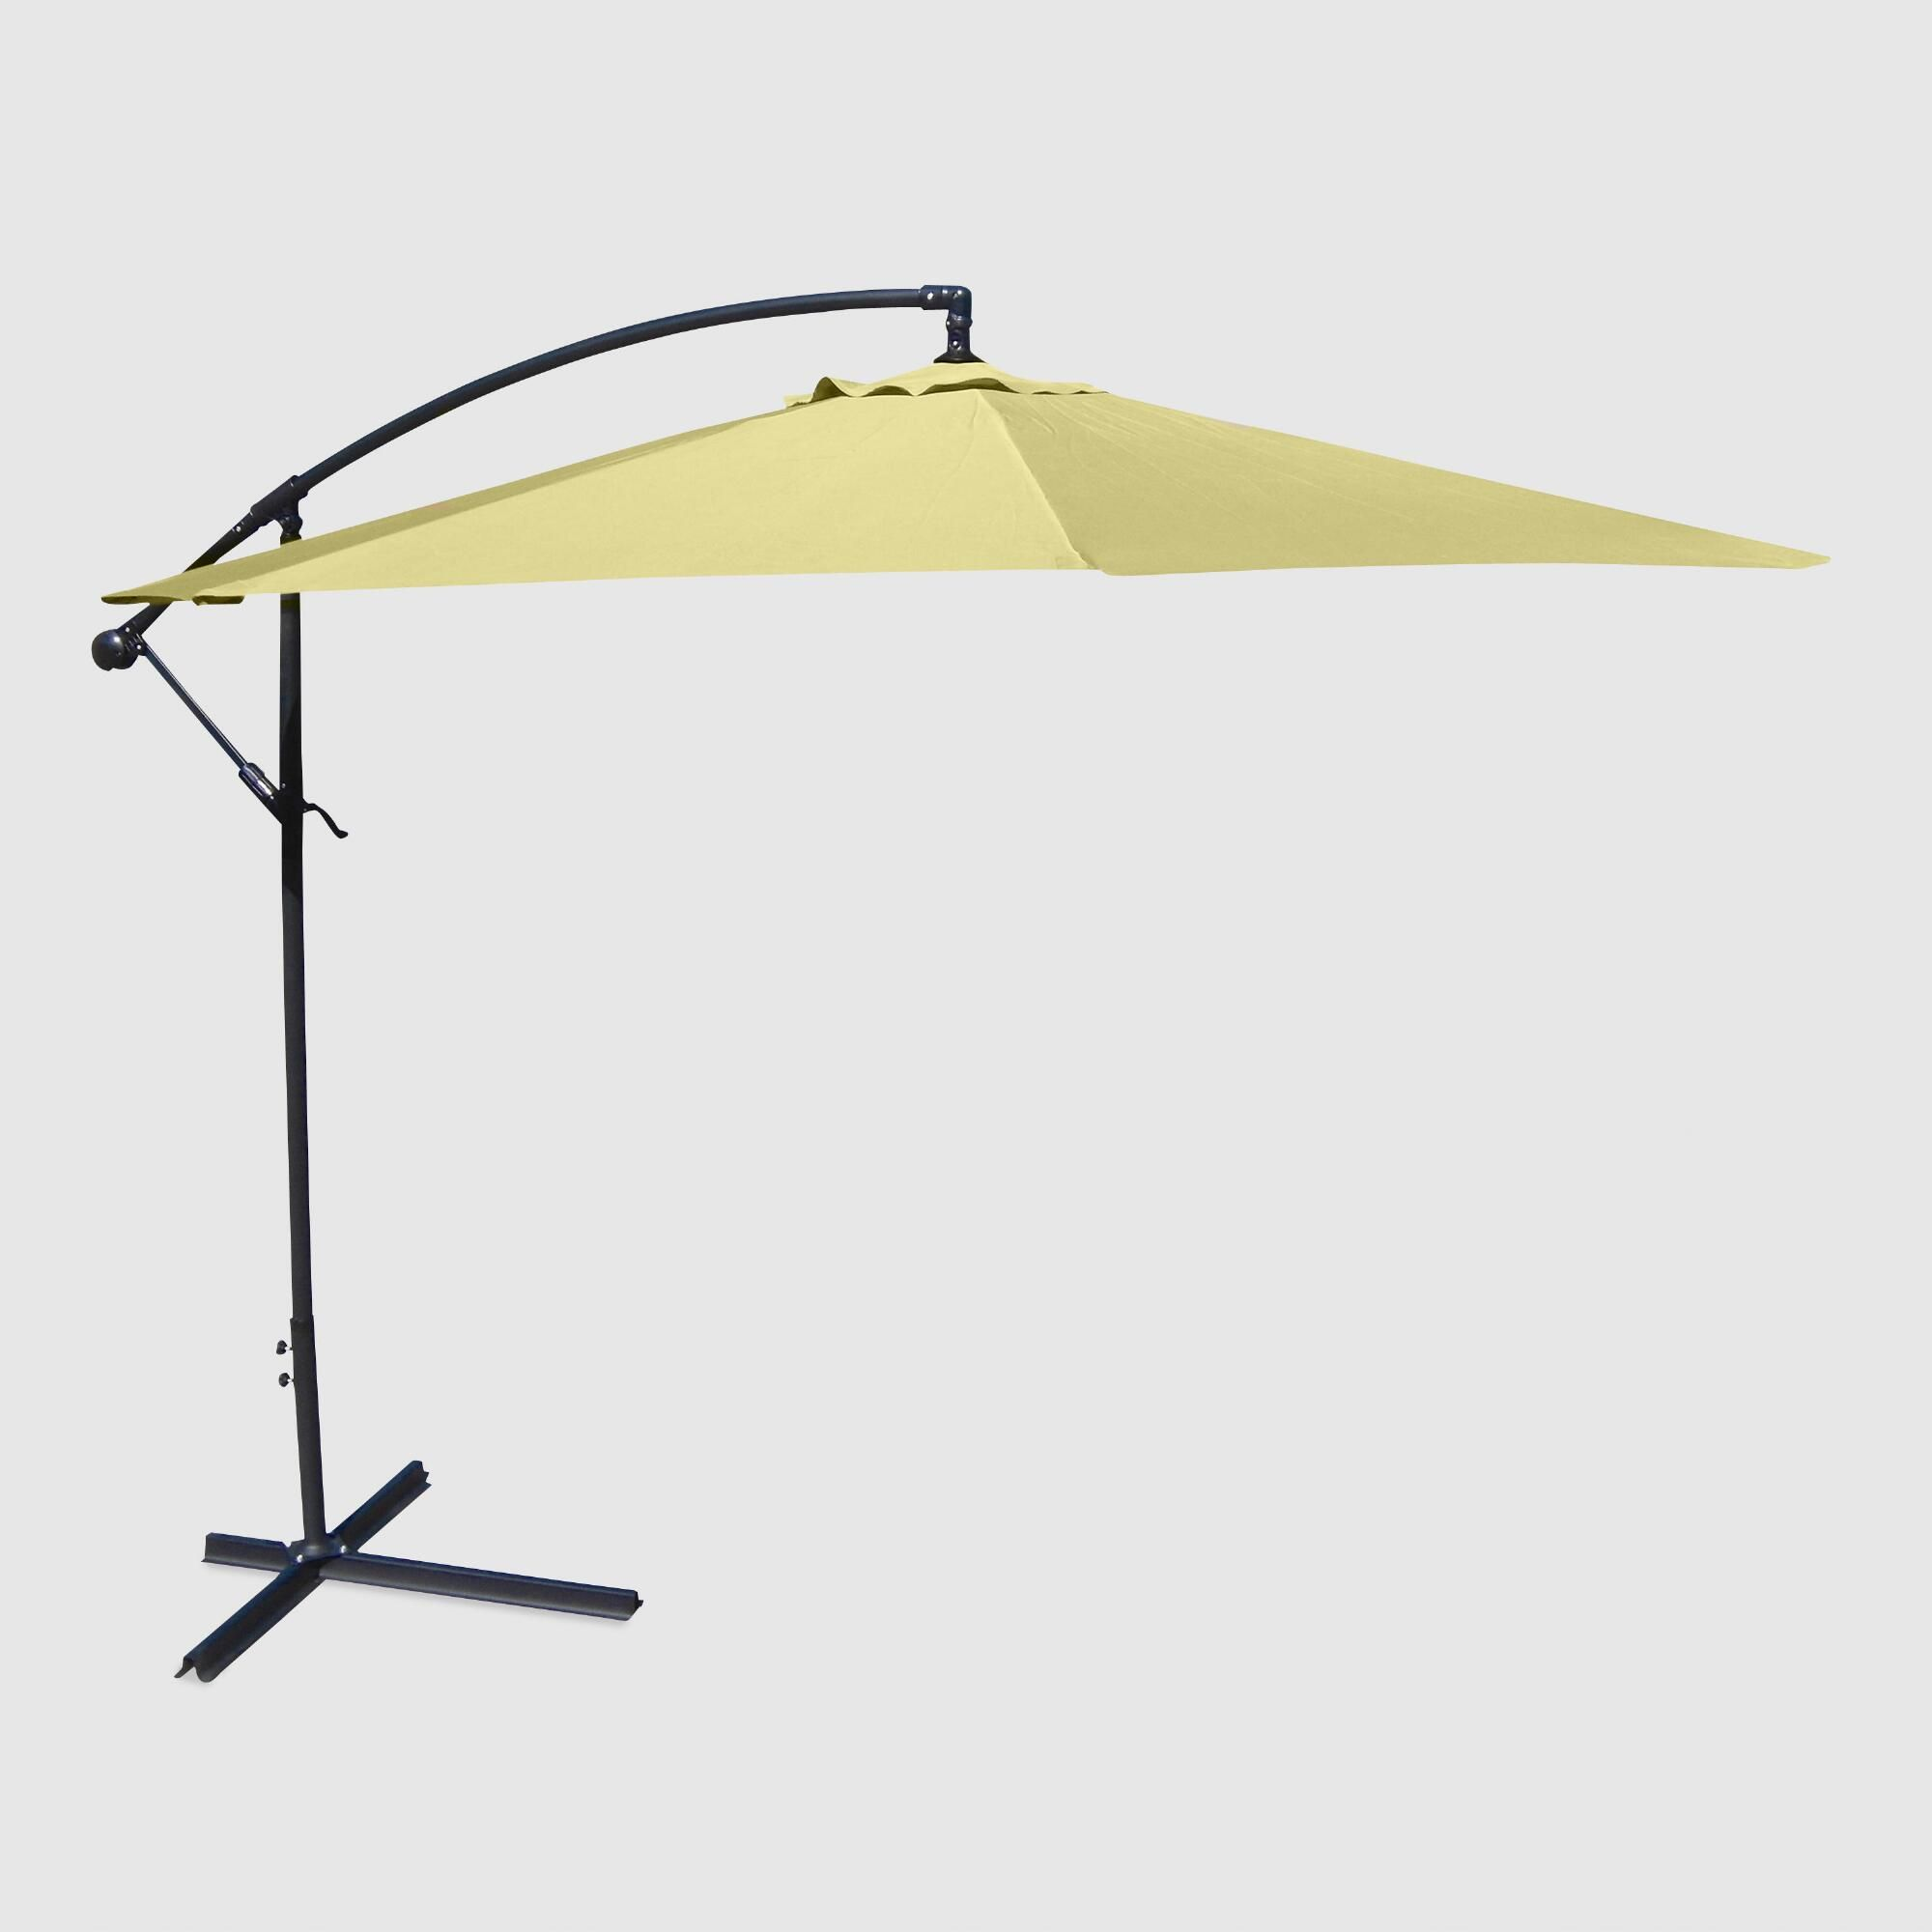 Canary Yellow 10 Ft Cantilever Outdoor Patio Umbrella